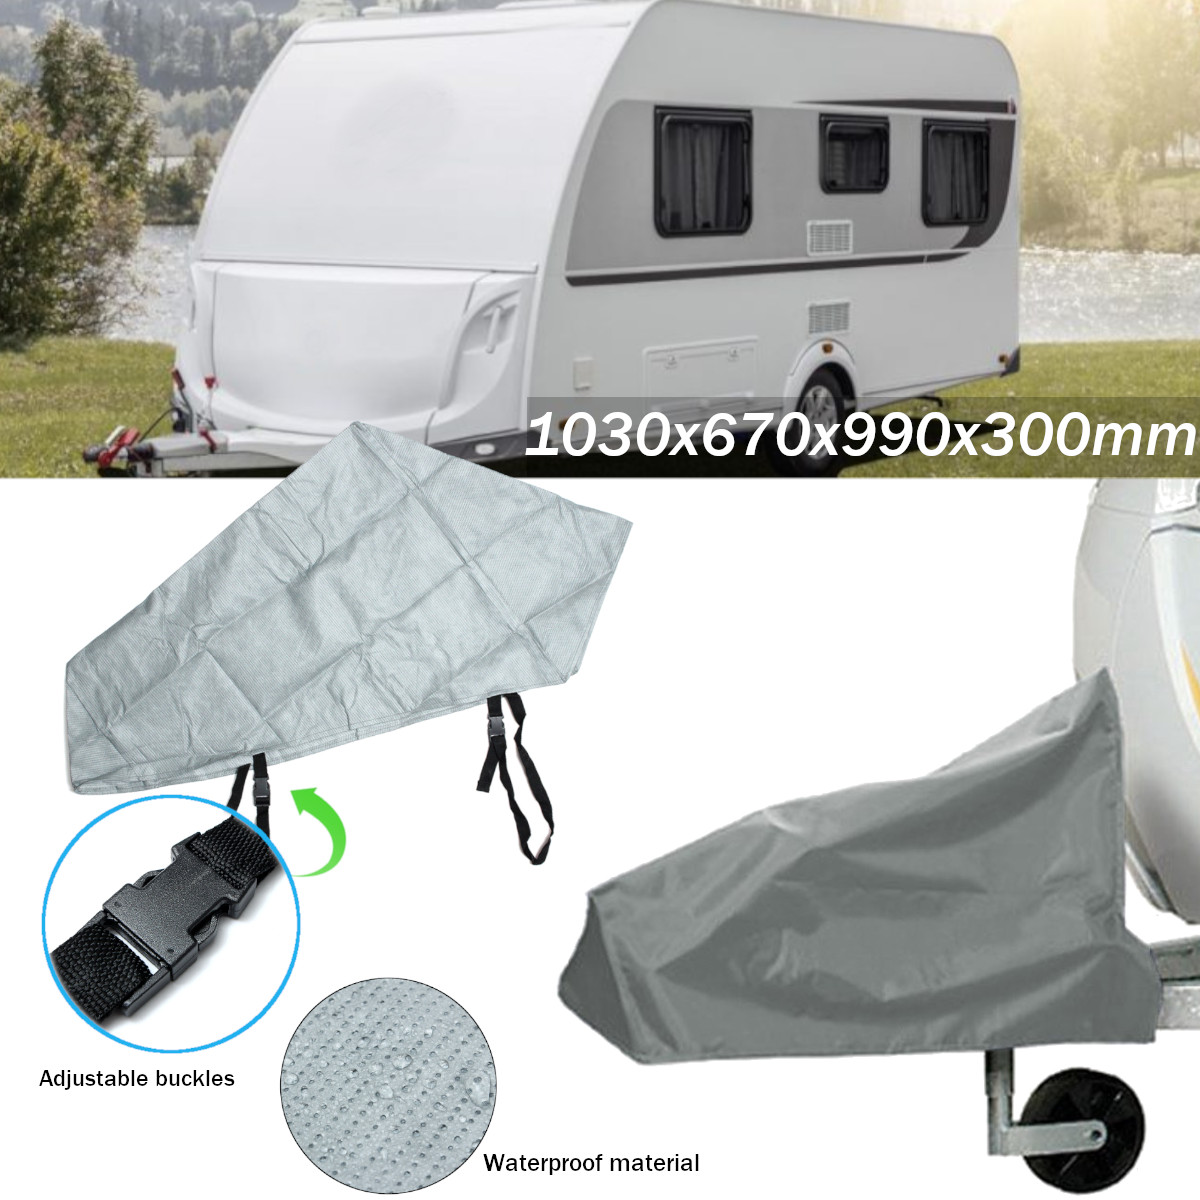 Grey Waterproof Caravan Tailer Towing Hitch Coupling Lock Cover Reflective Coating Material Rain Dust Protect